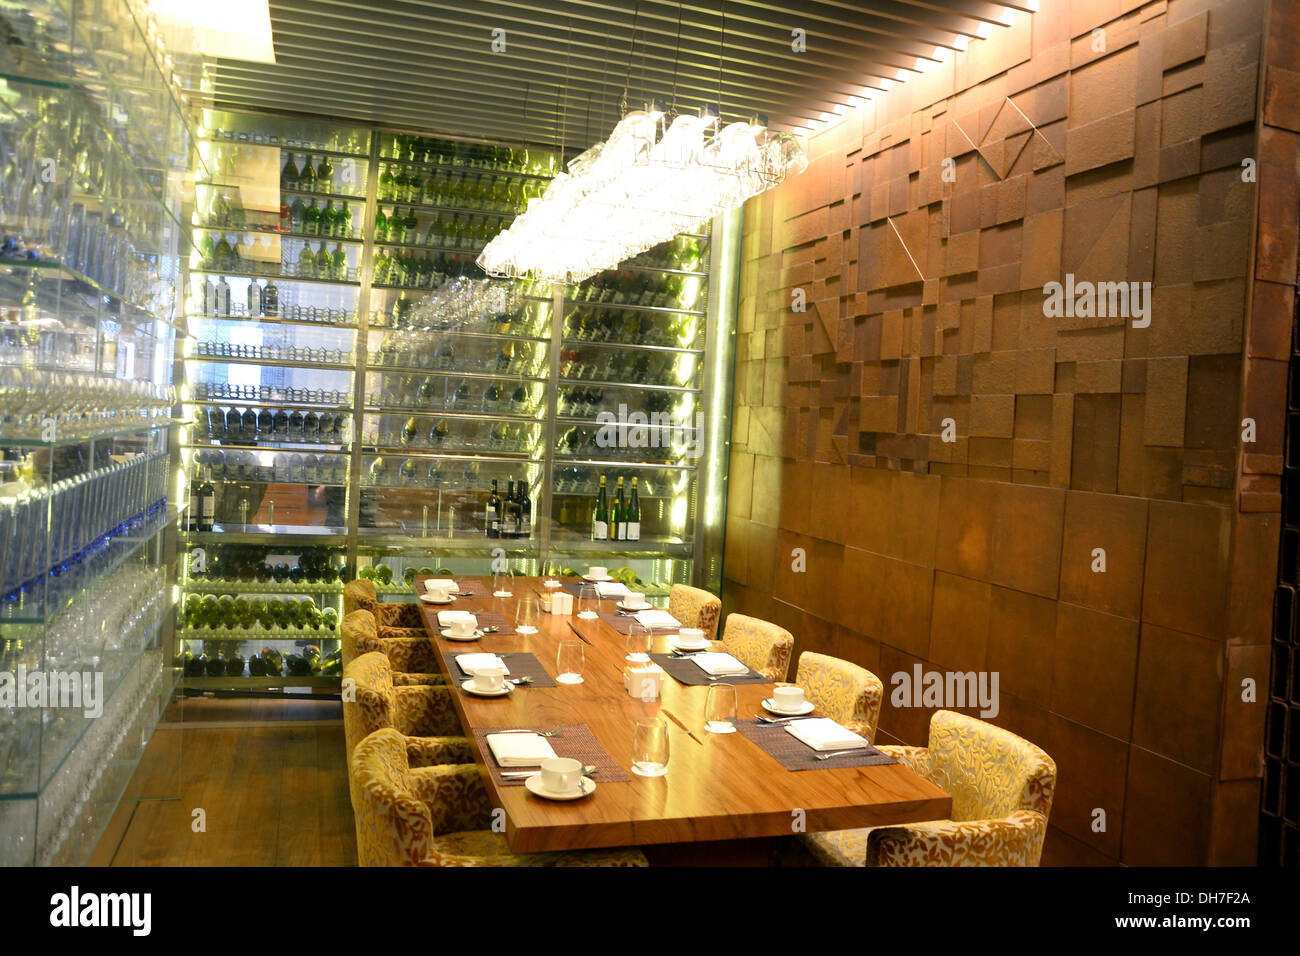 Restaurant dining table - Stock Image